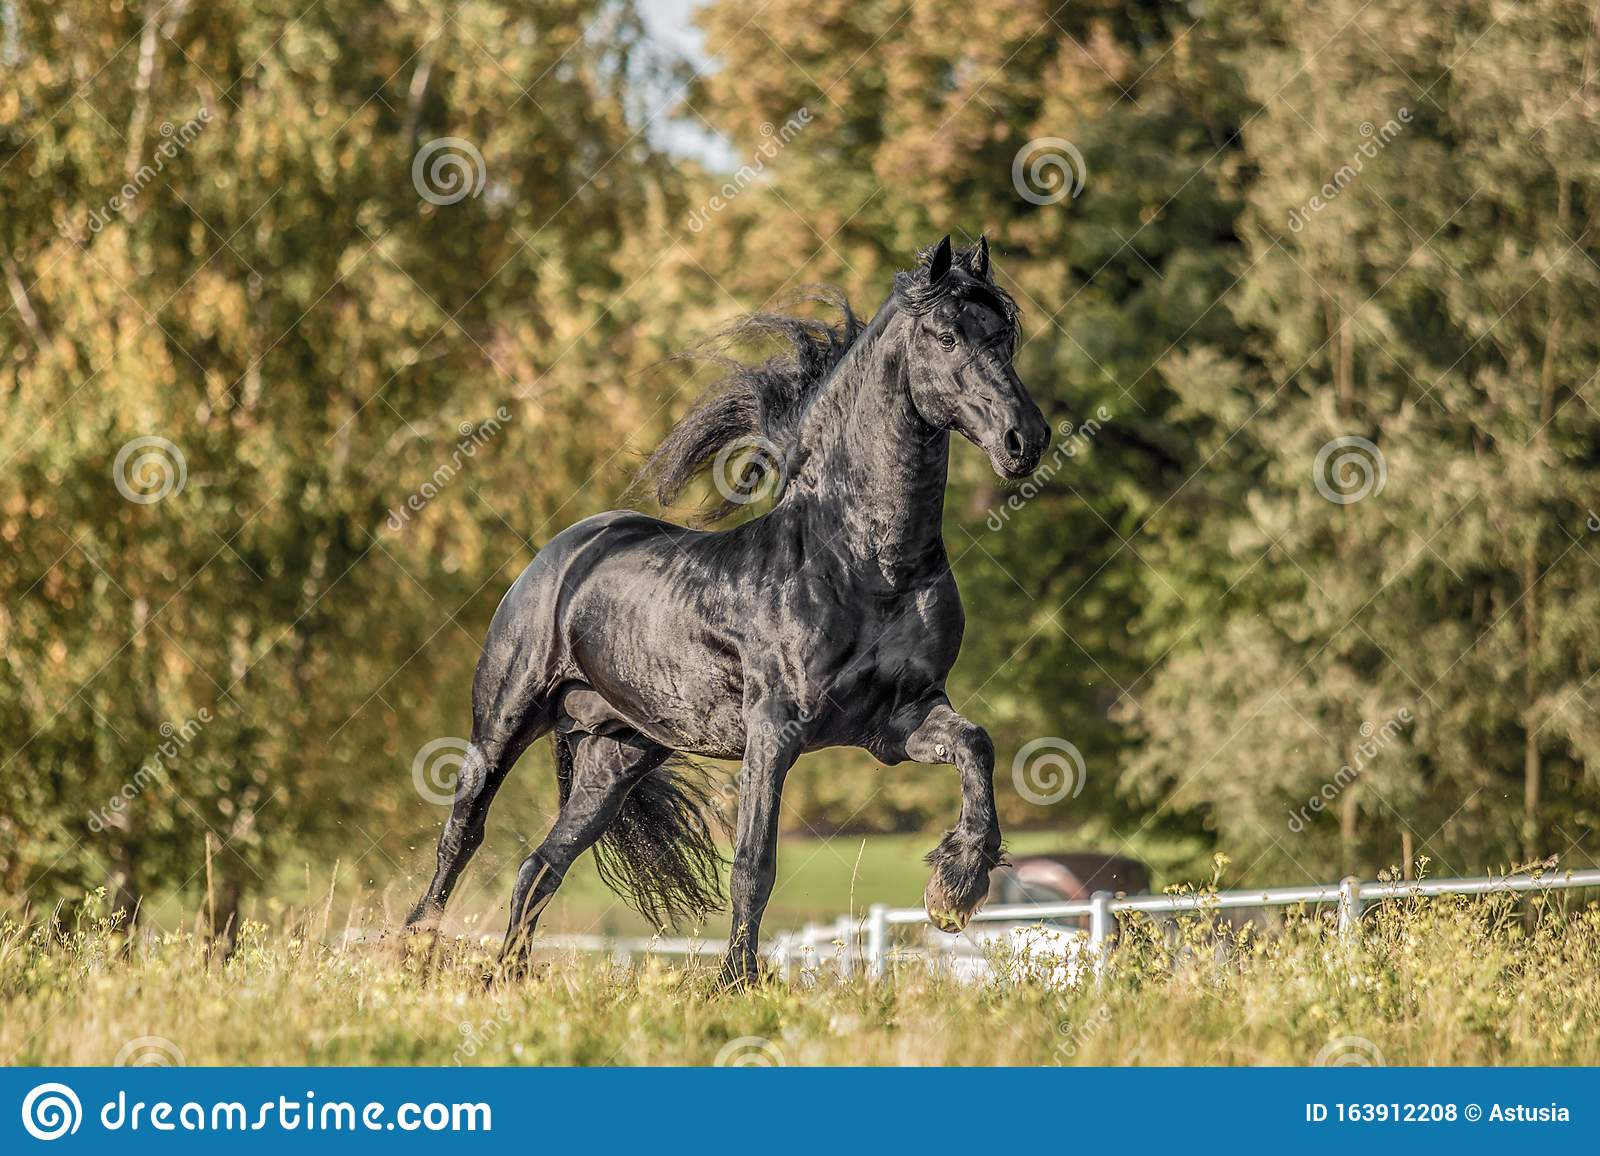 Beautiful Black Horse The Friesian Stallion Gallops On The Autumn Meadow Stock Photo Image Of Nature Freedom 163912208